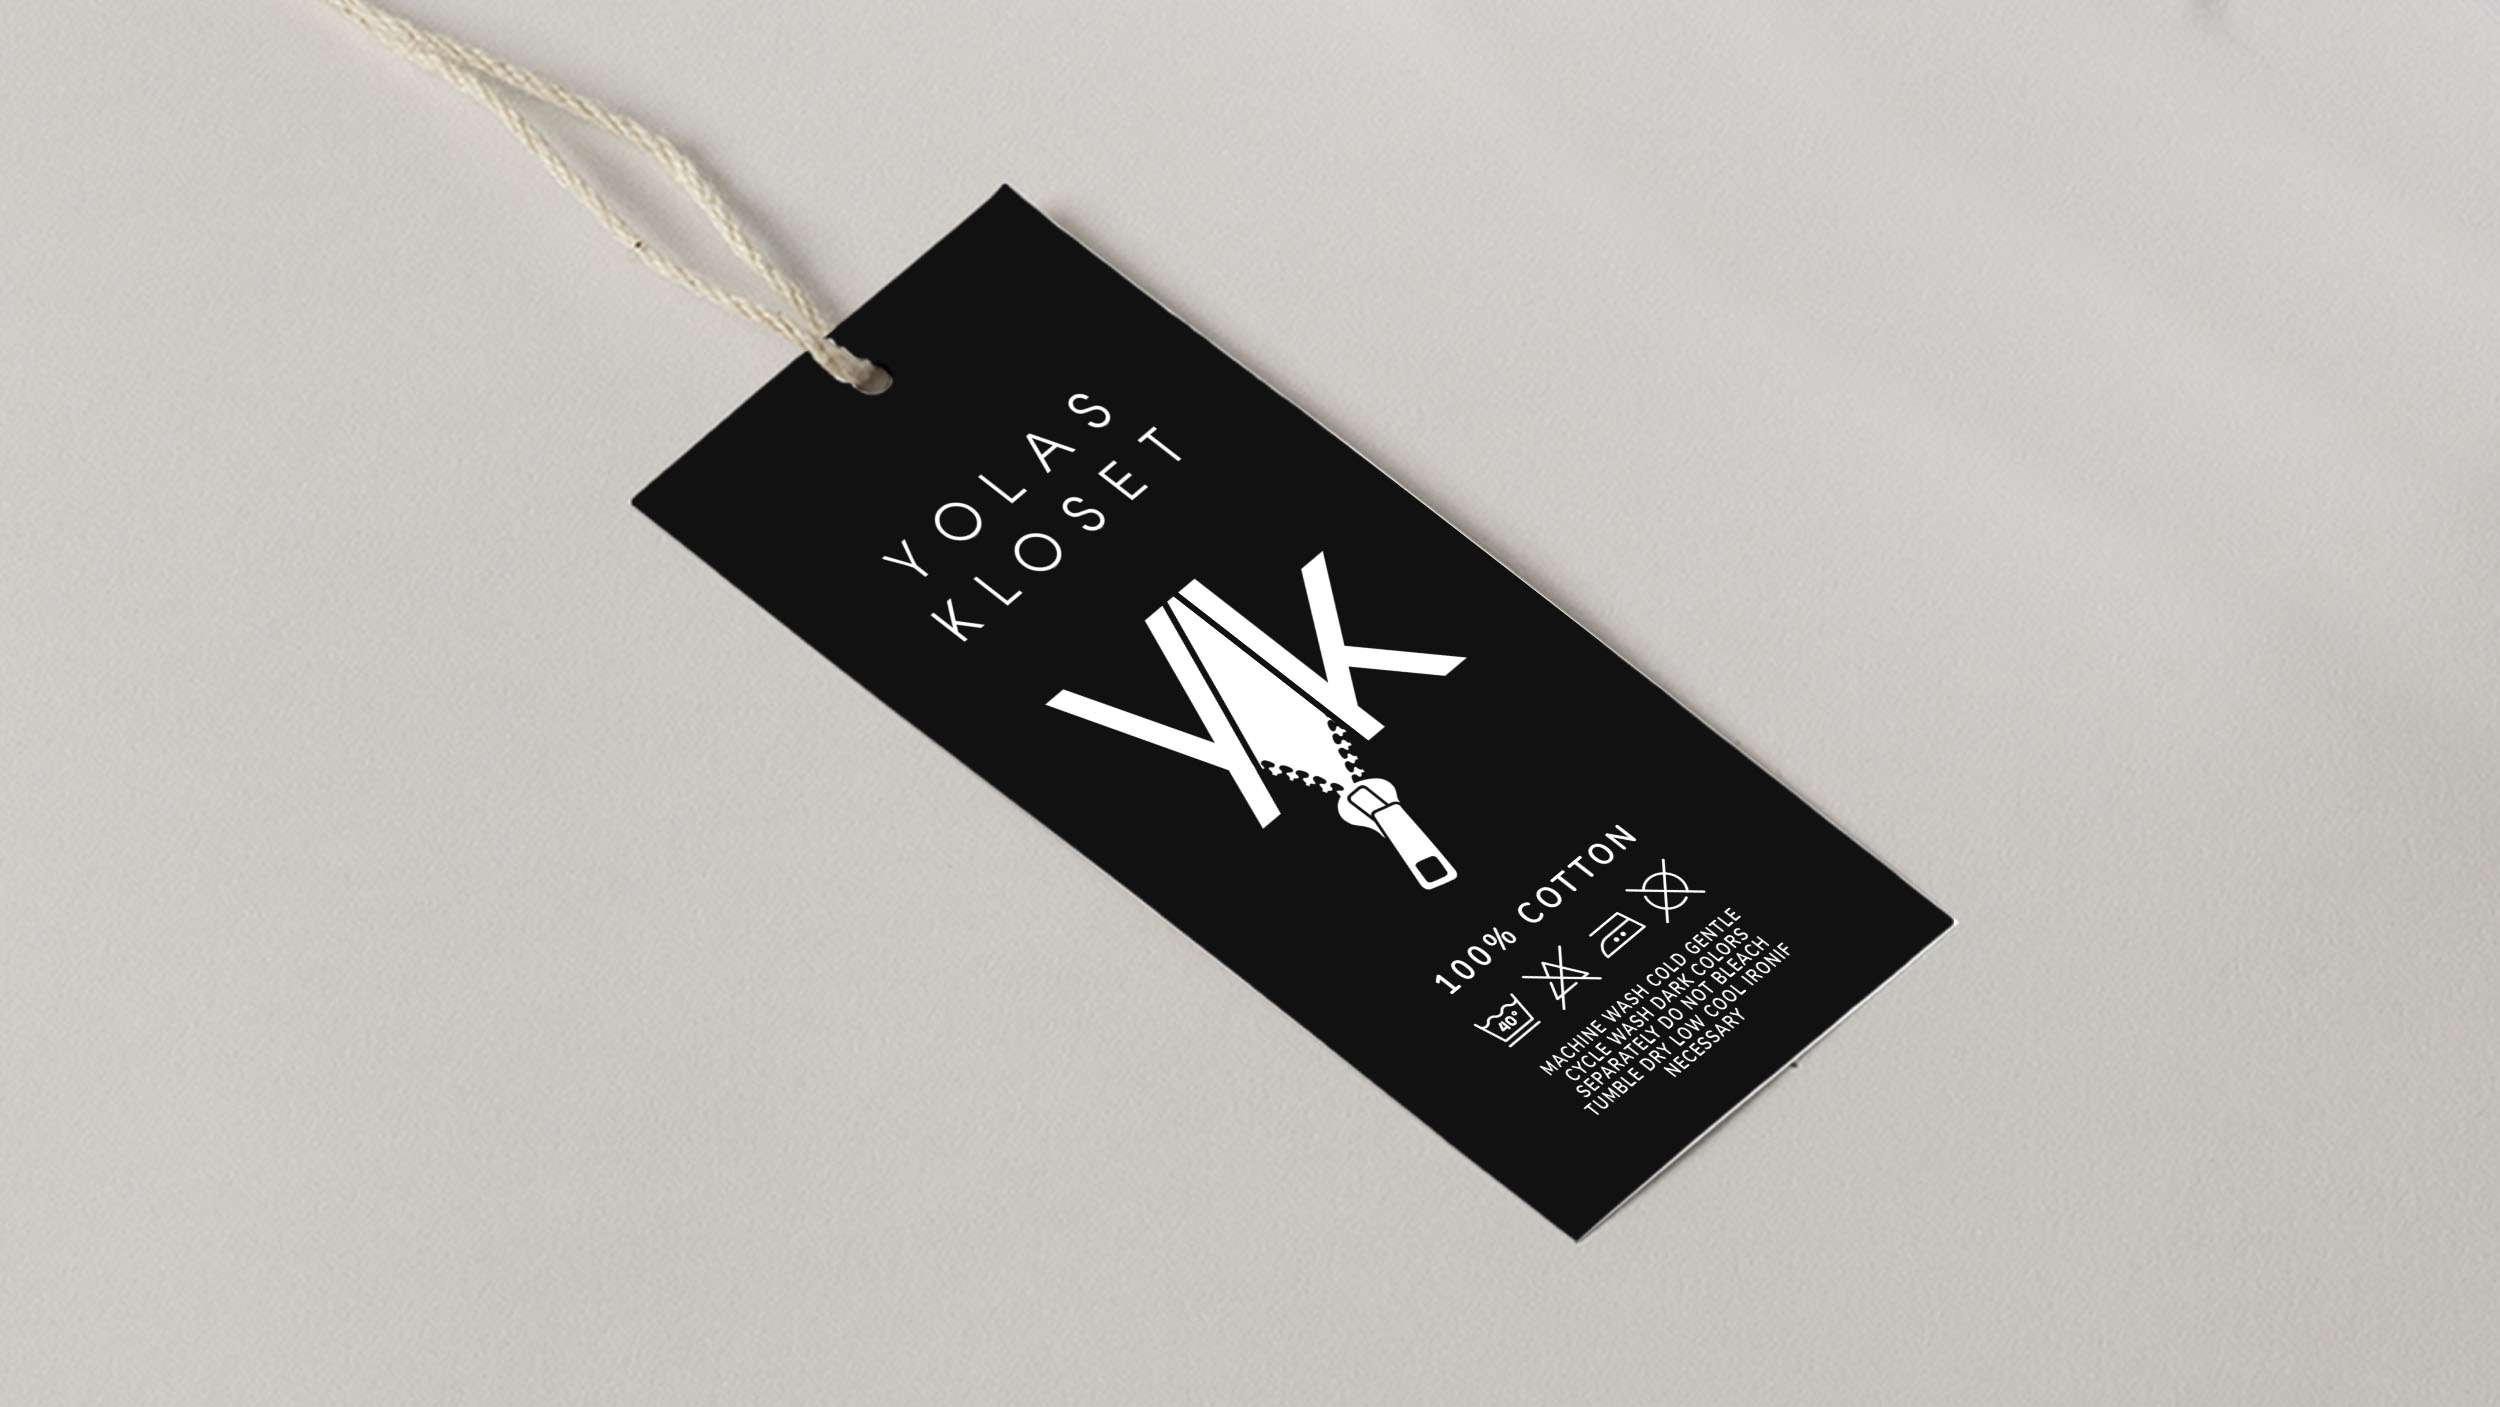 Custom t-shirt tag design for clothing brand, using black and white color palette.